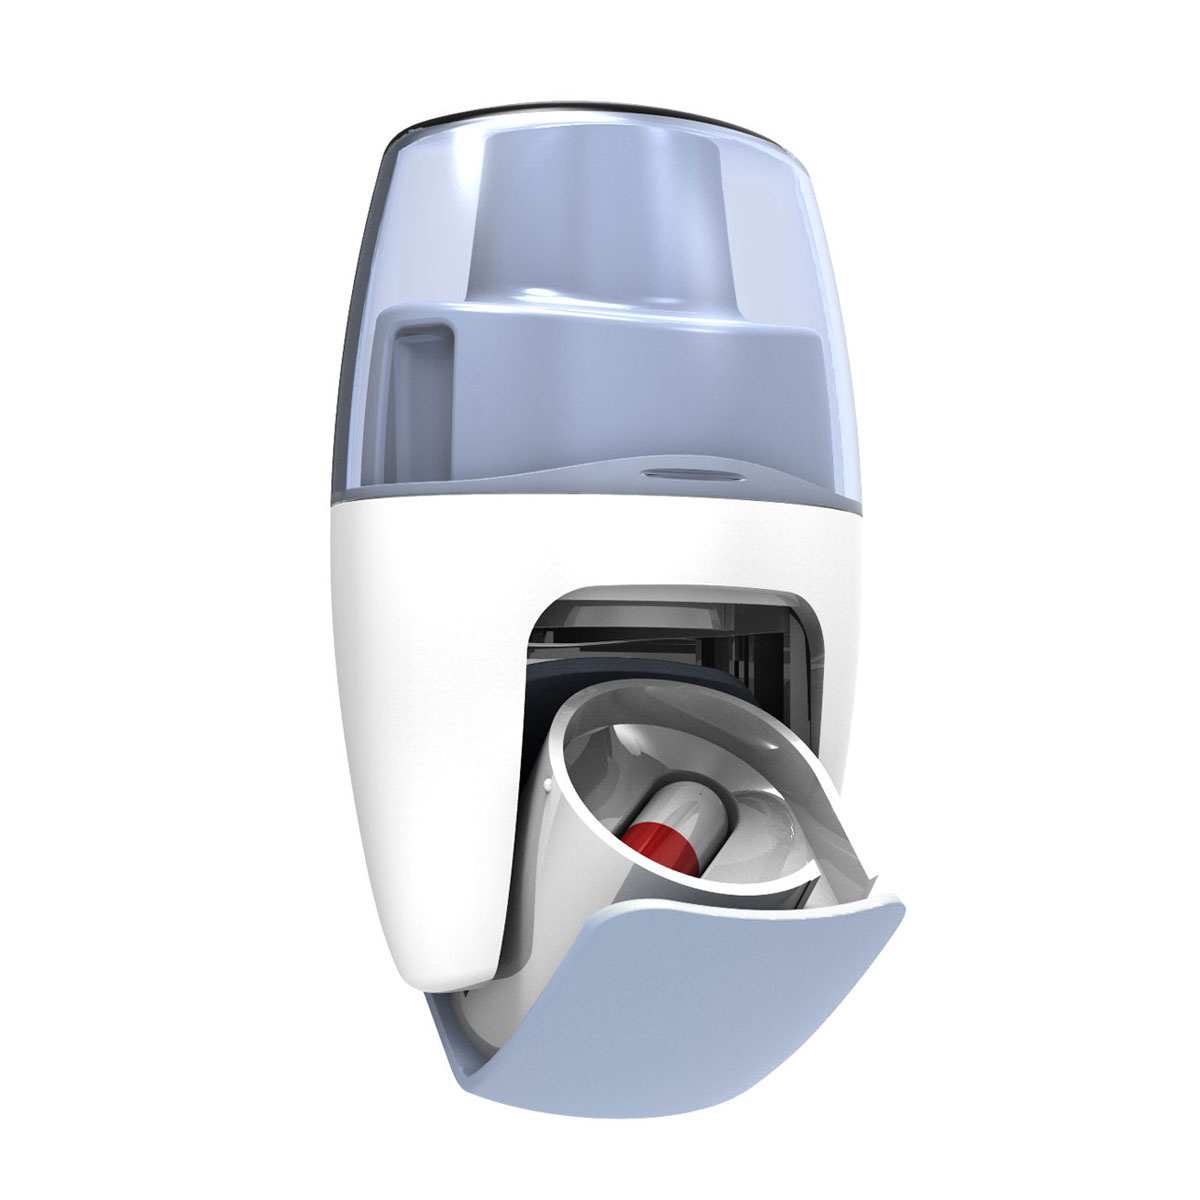 Medizintechnik Inhalator medical device inhaler